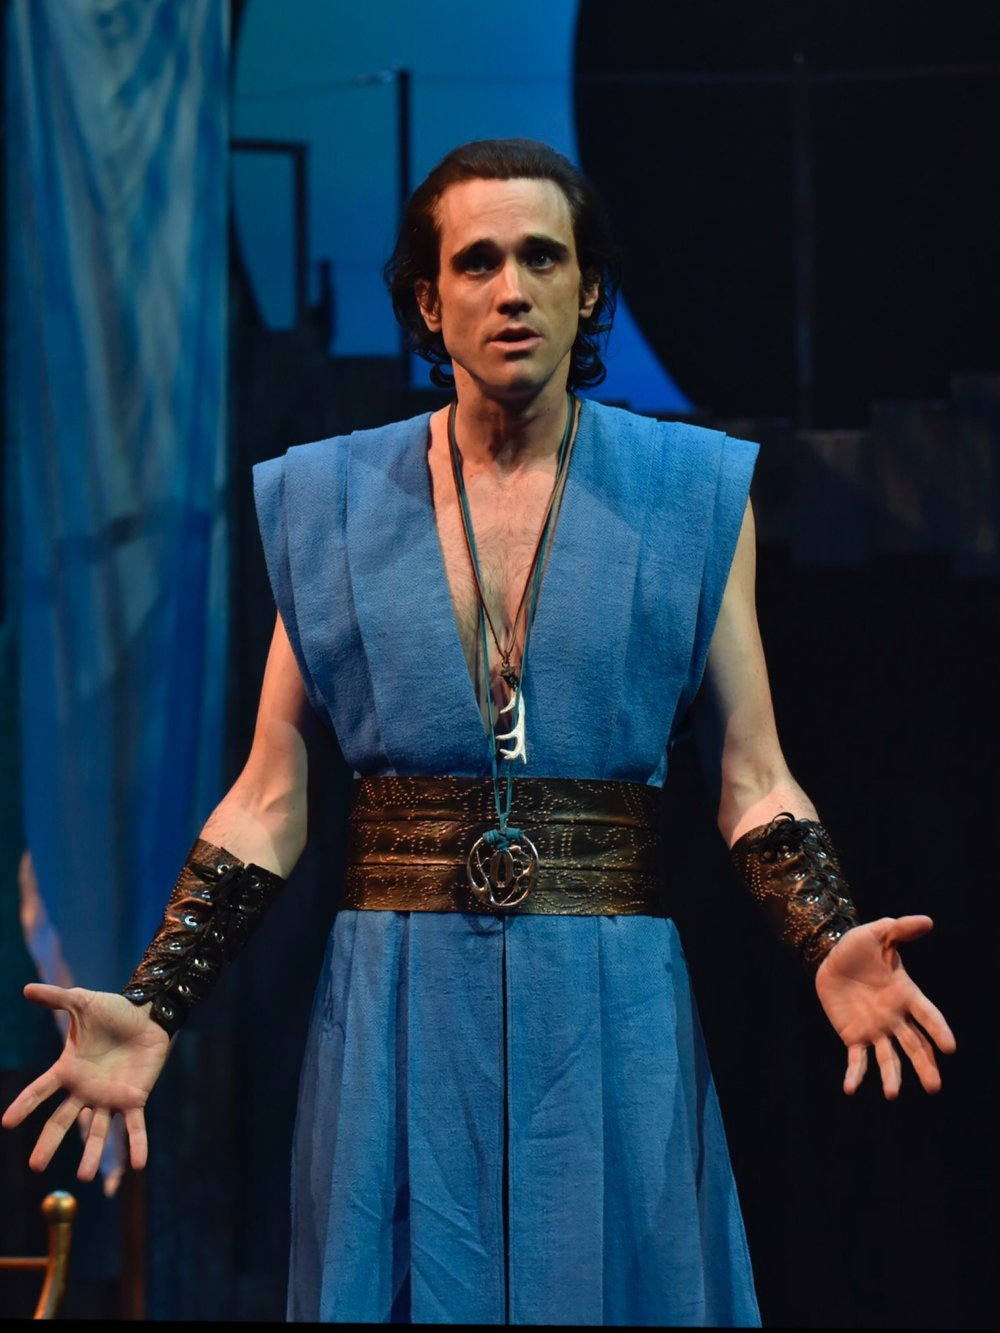 John Keller as Pericles